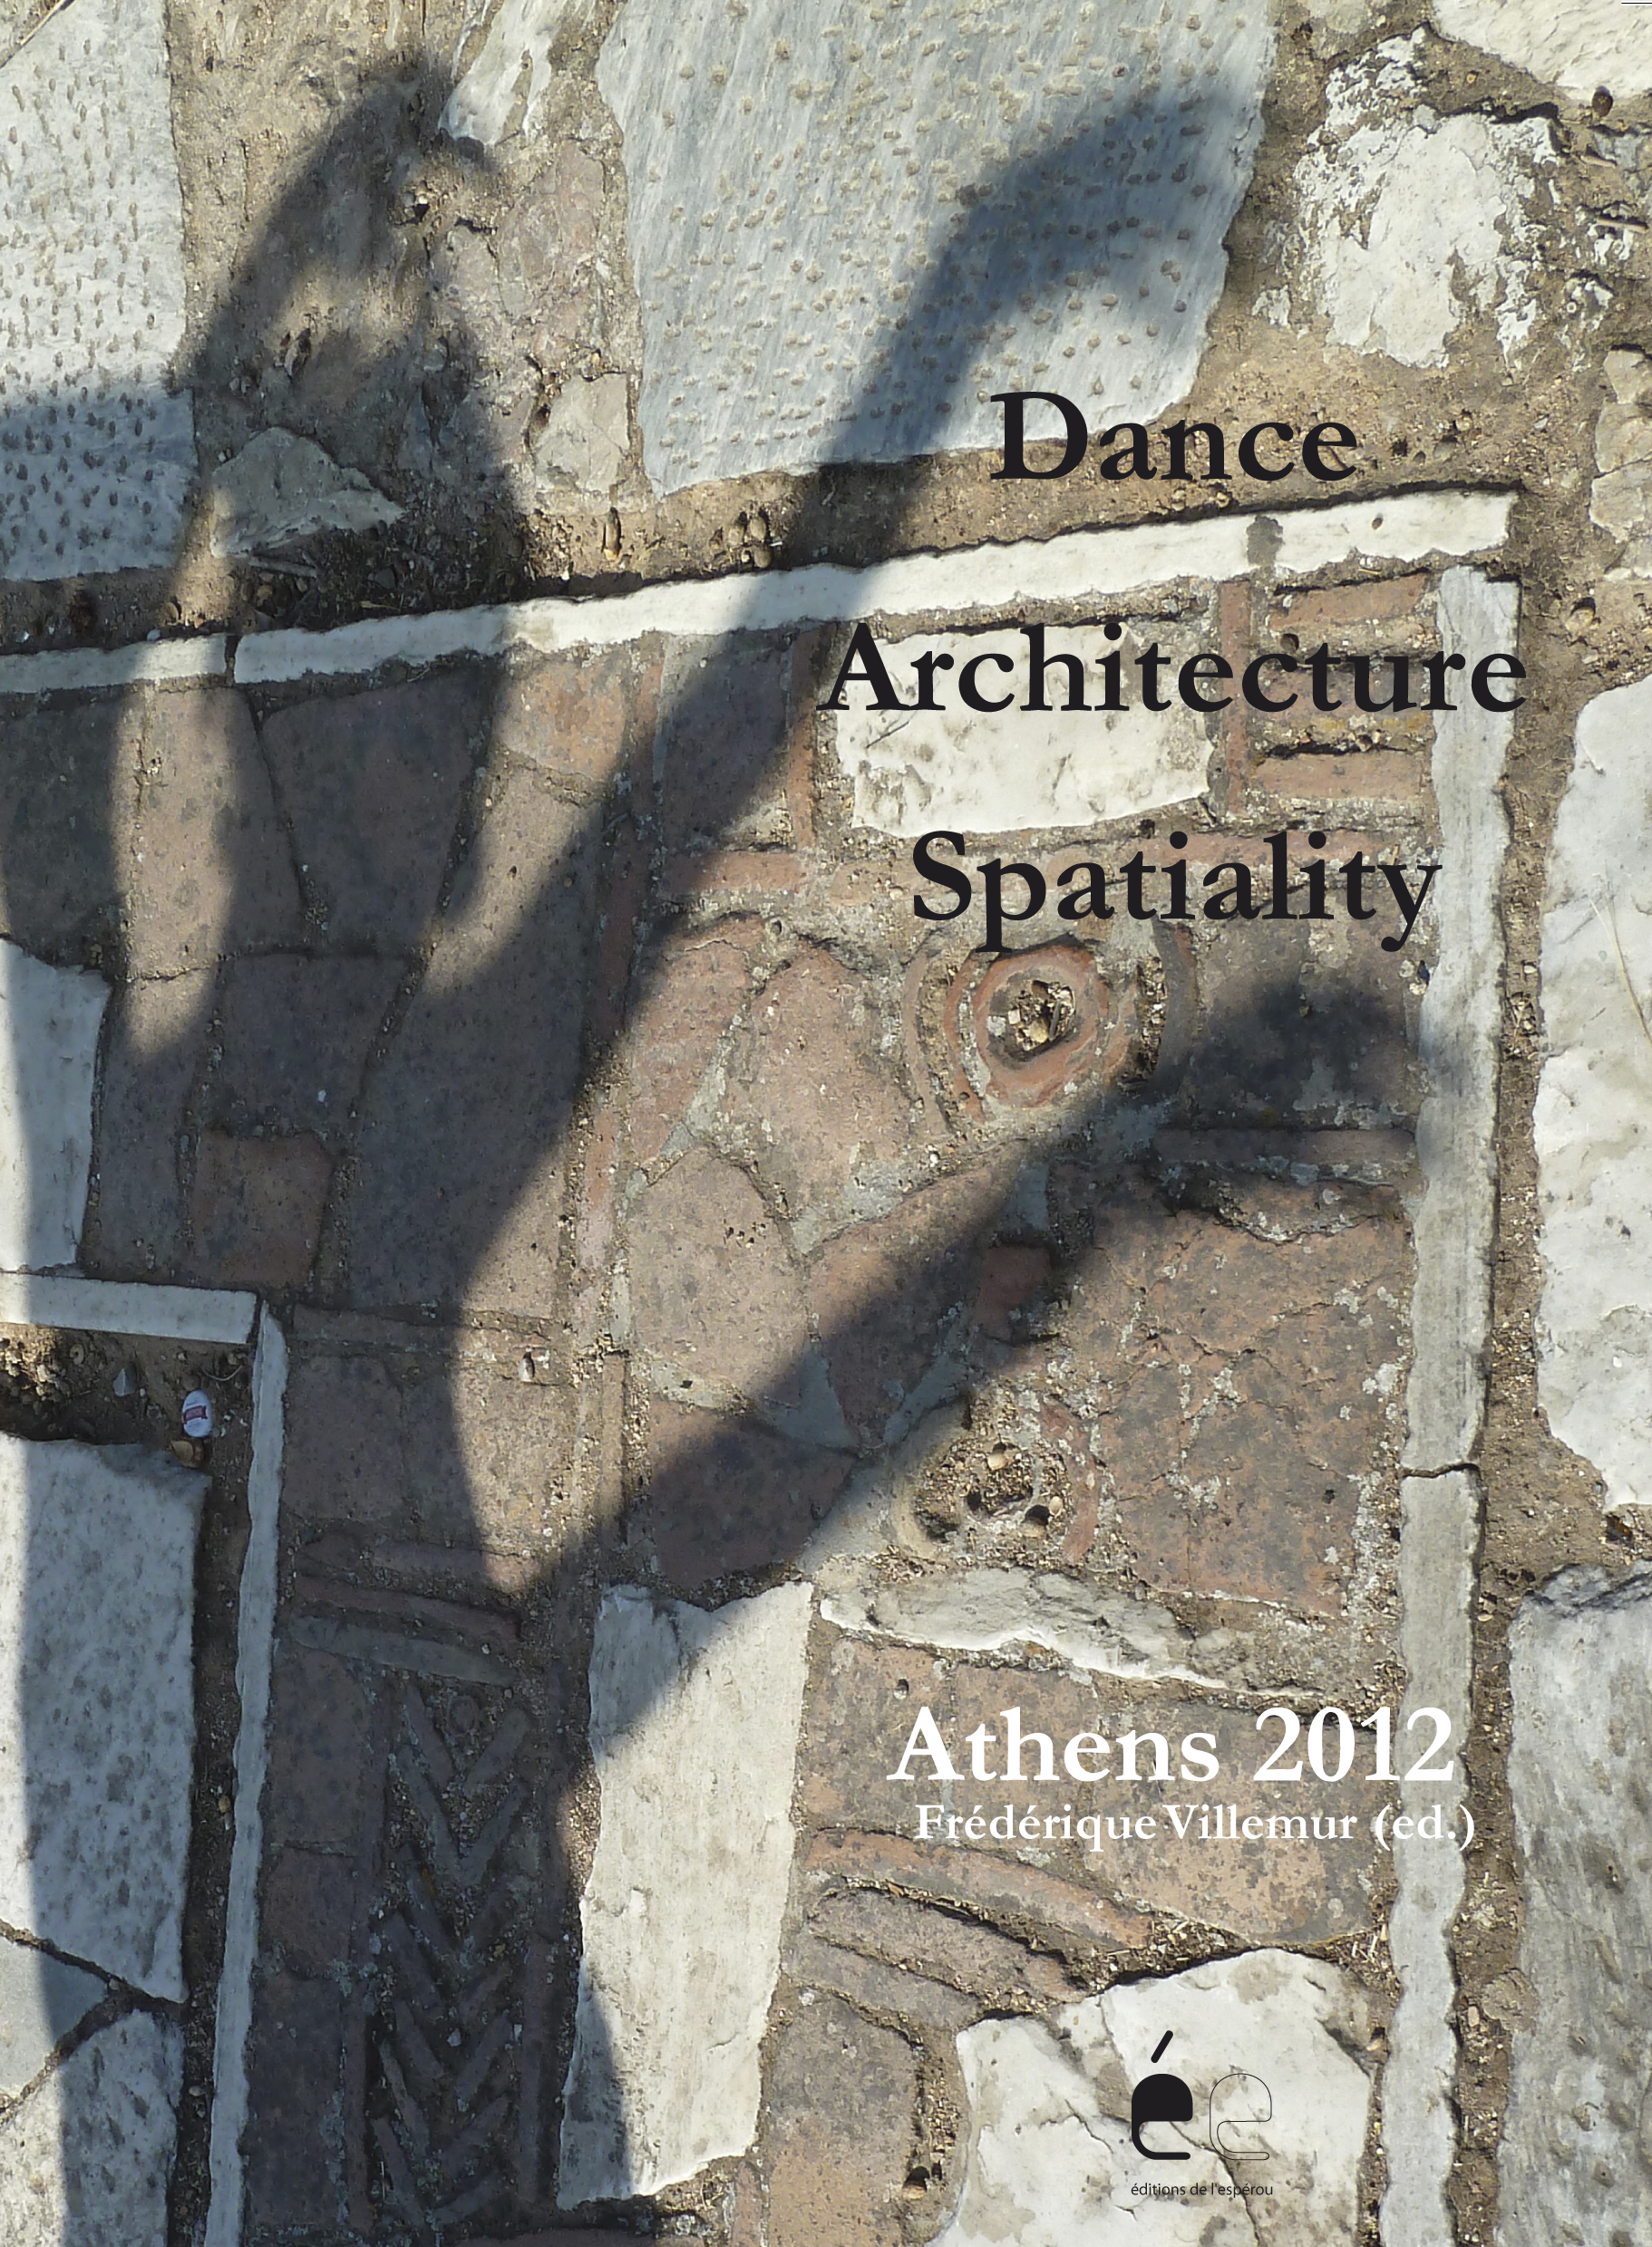 Dance Architecture Spatiality Athens 2012